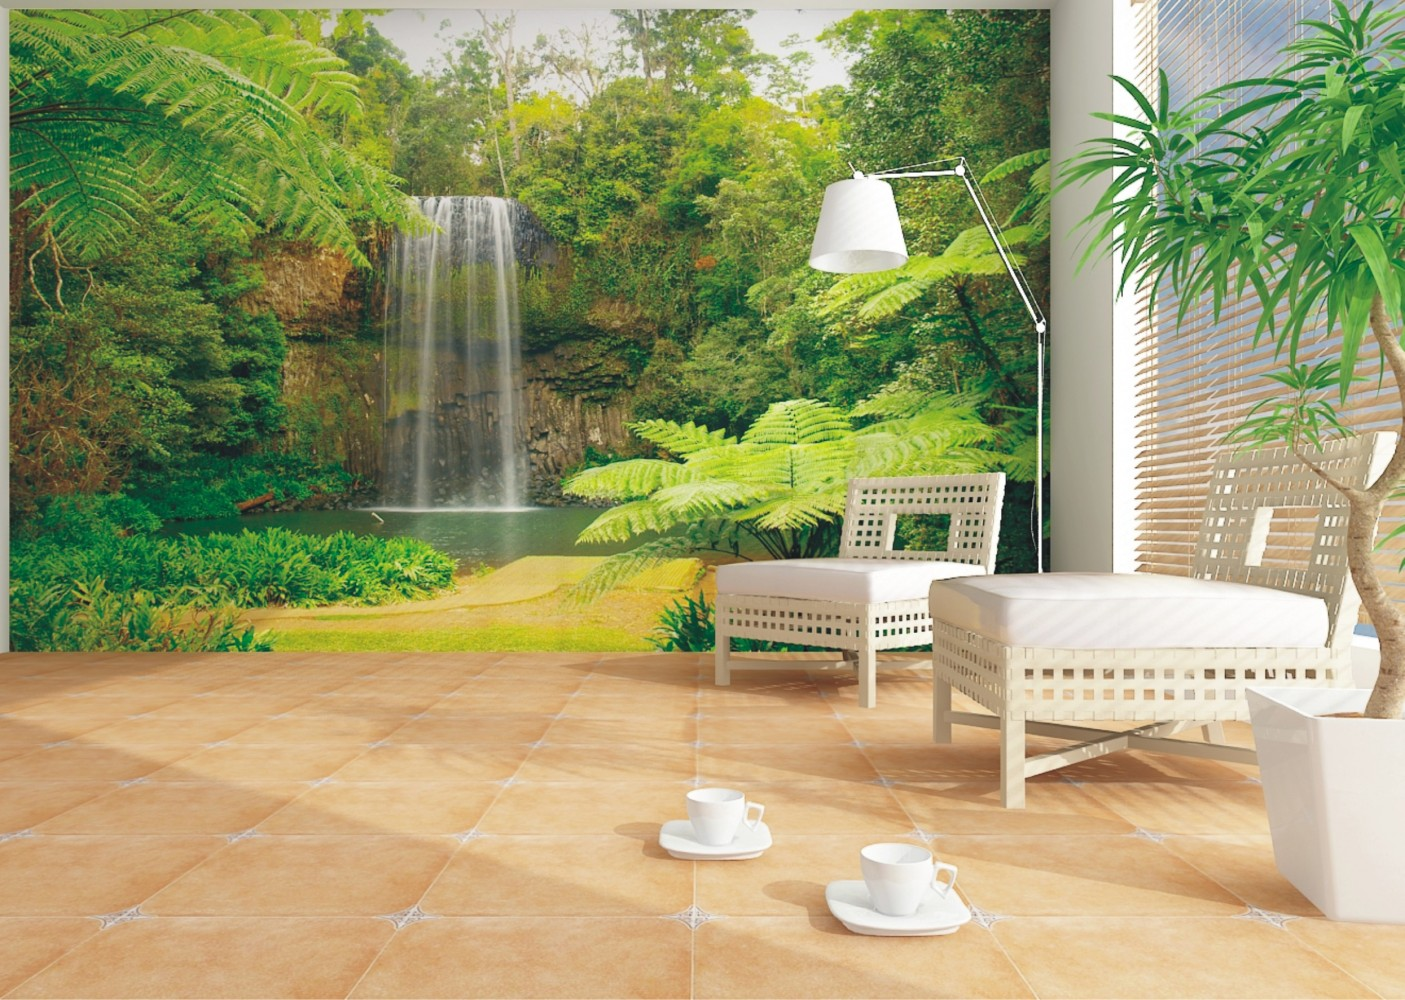 Wall mural wallpaper nature jungle downfall plant photo for Mural wallpaper